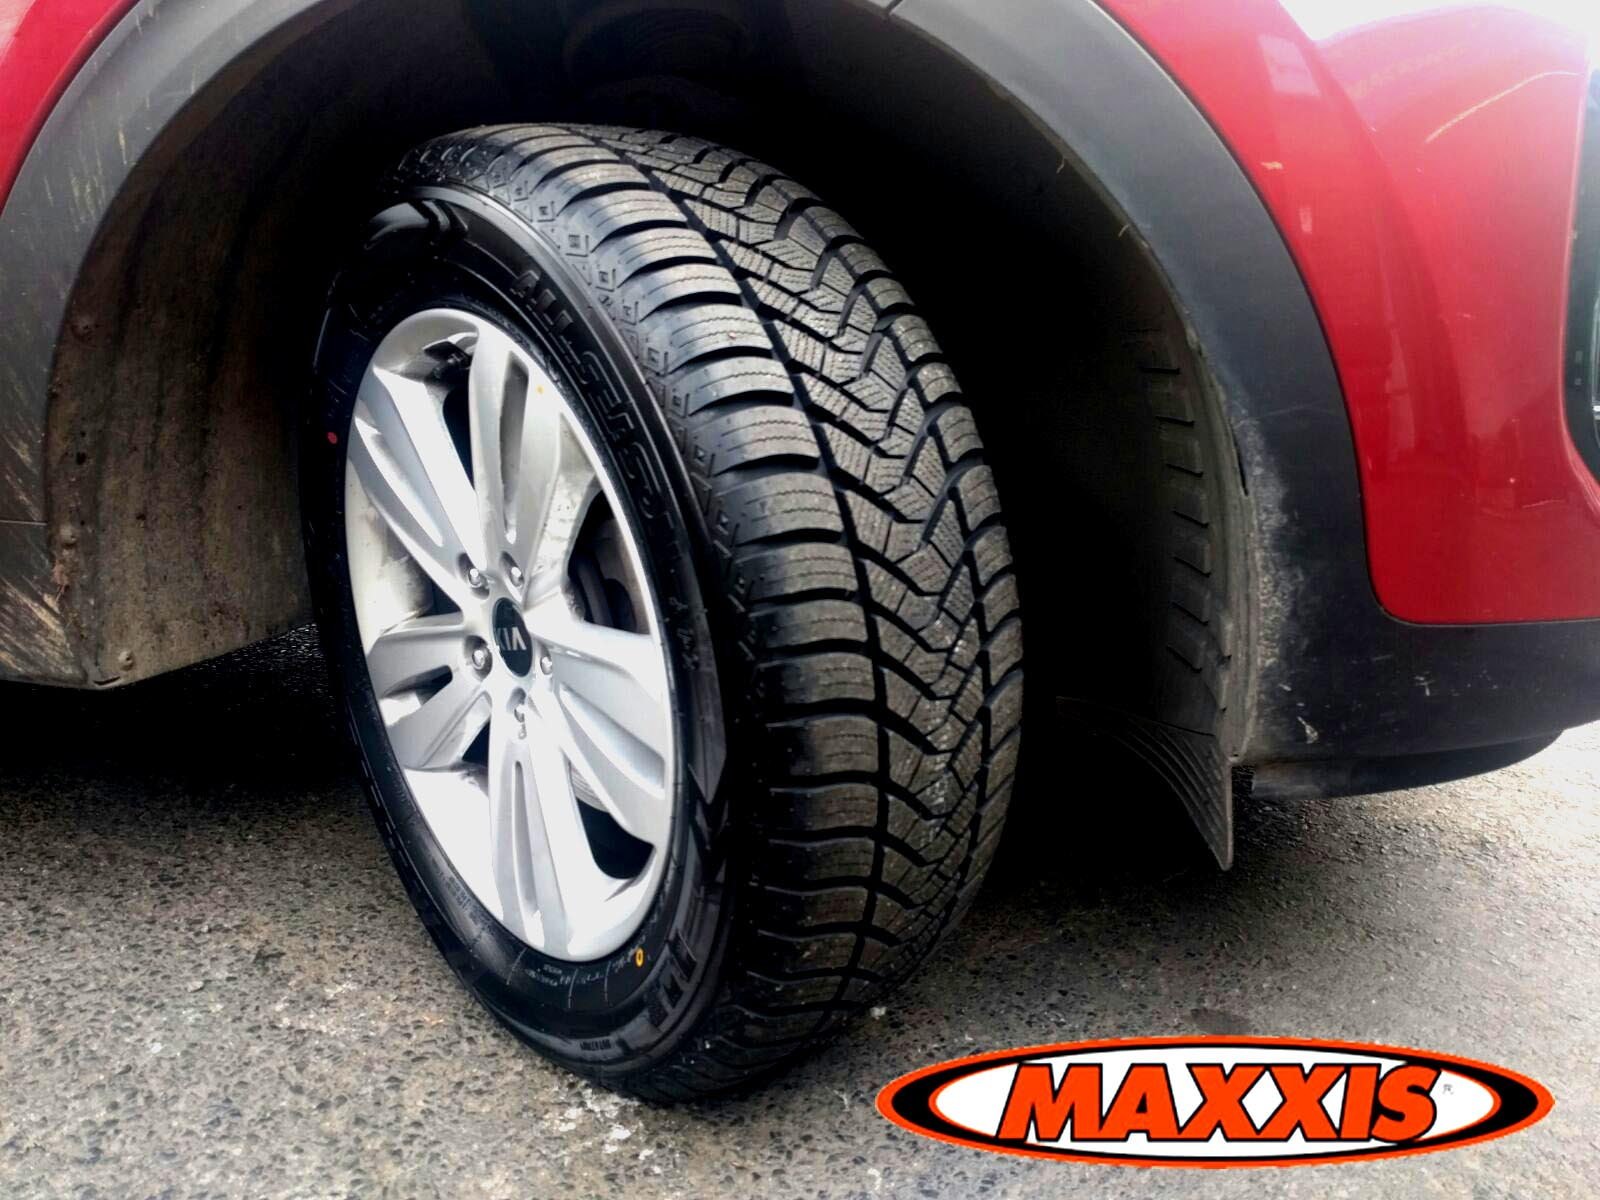 Maxxis Ap2 All Season Tyres Now Available Tyres4sale Com